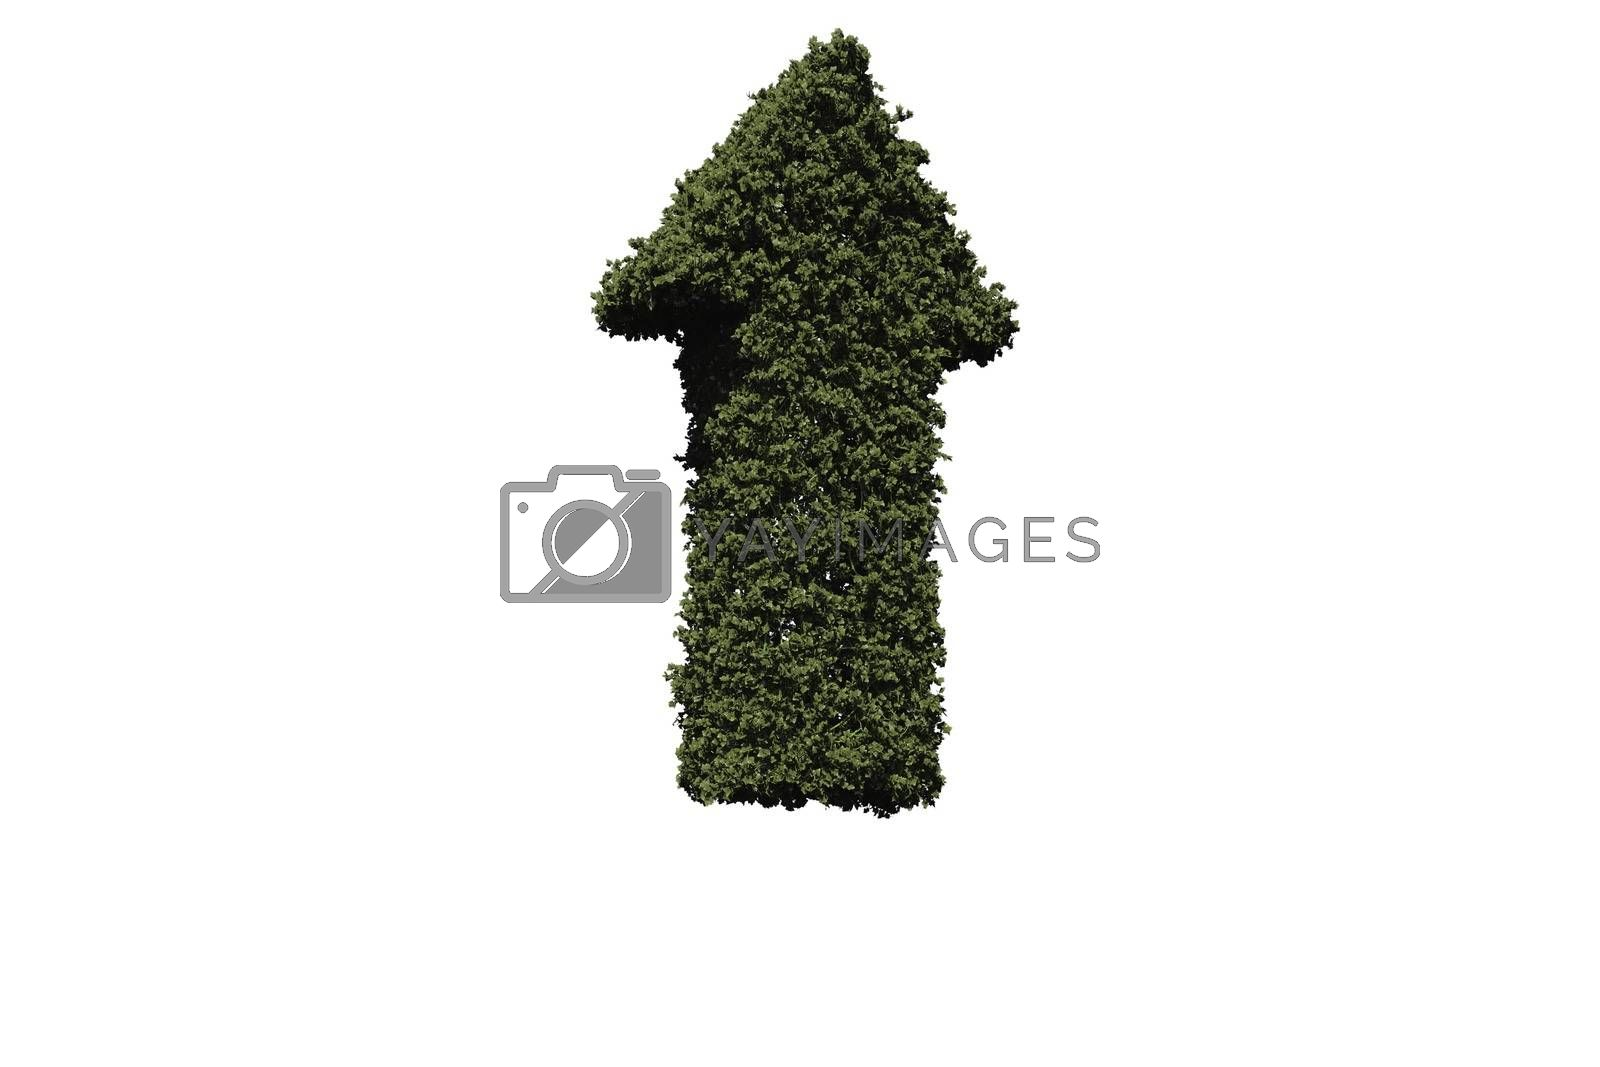 Royalty free image of Green arrow made of leaves by Wavebreakmedia